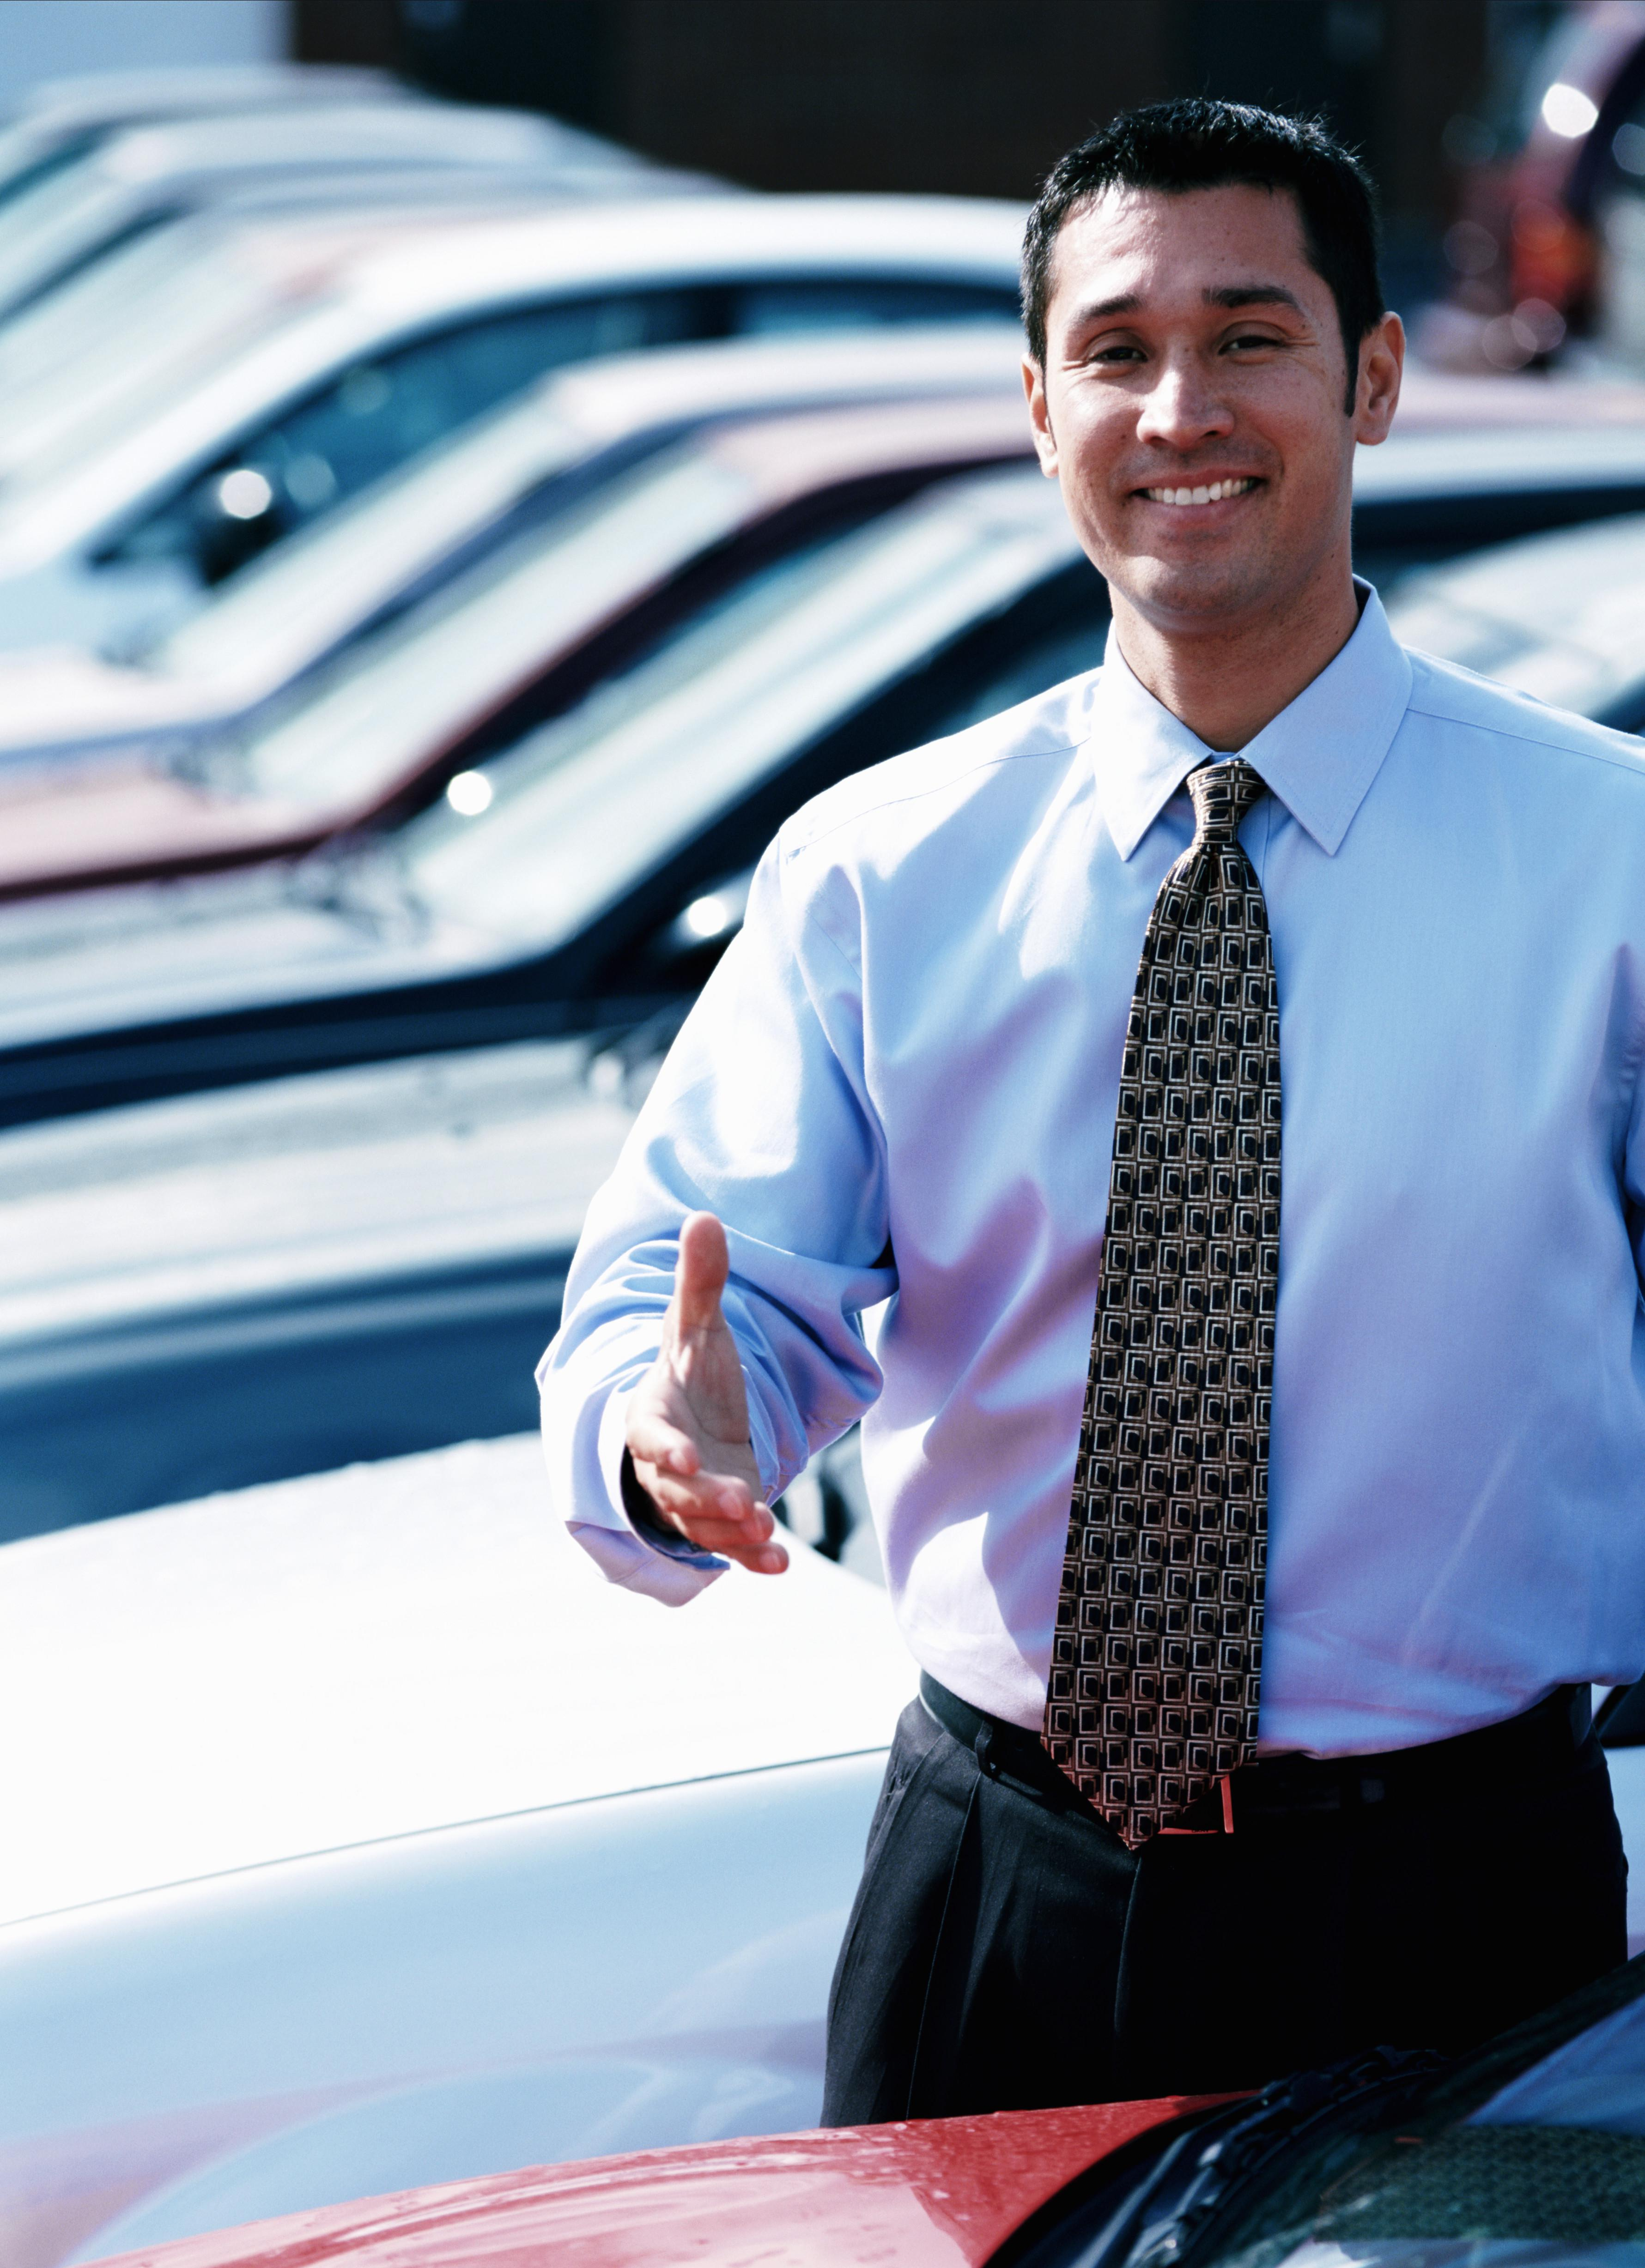 Car salesman in car lot